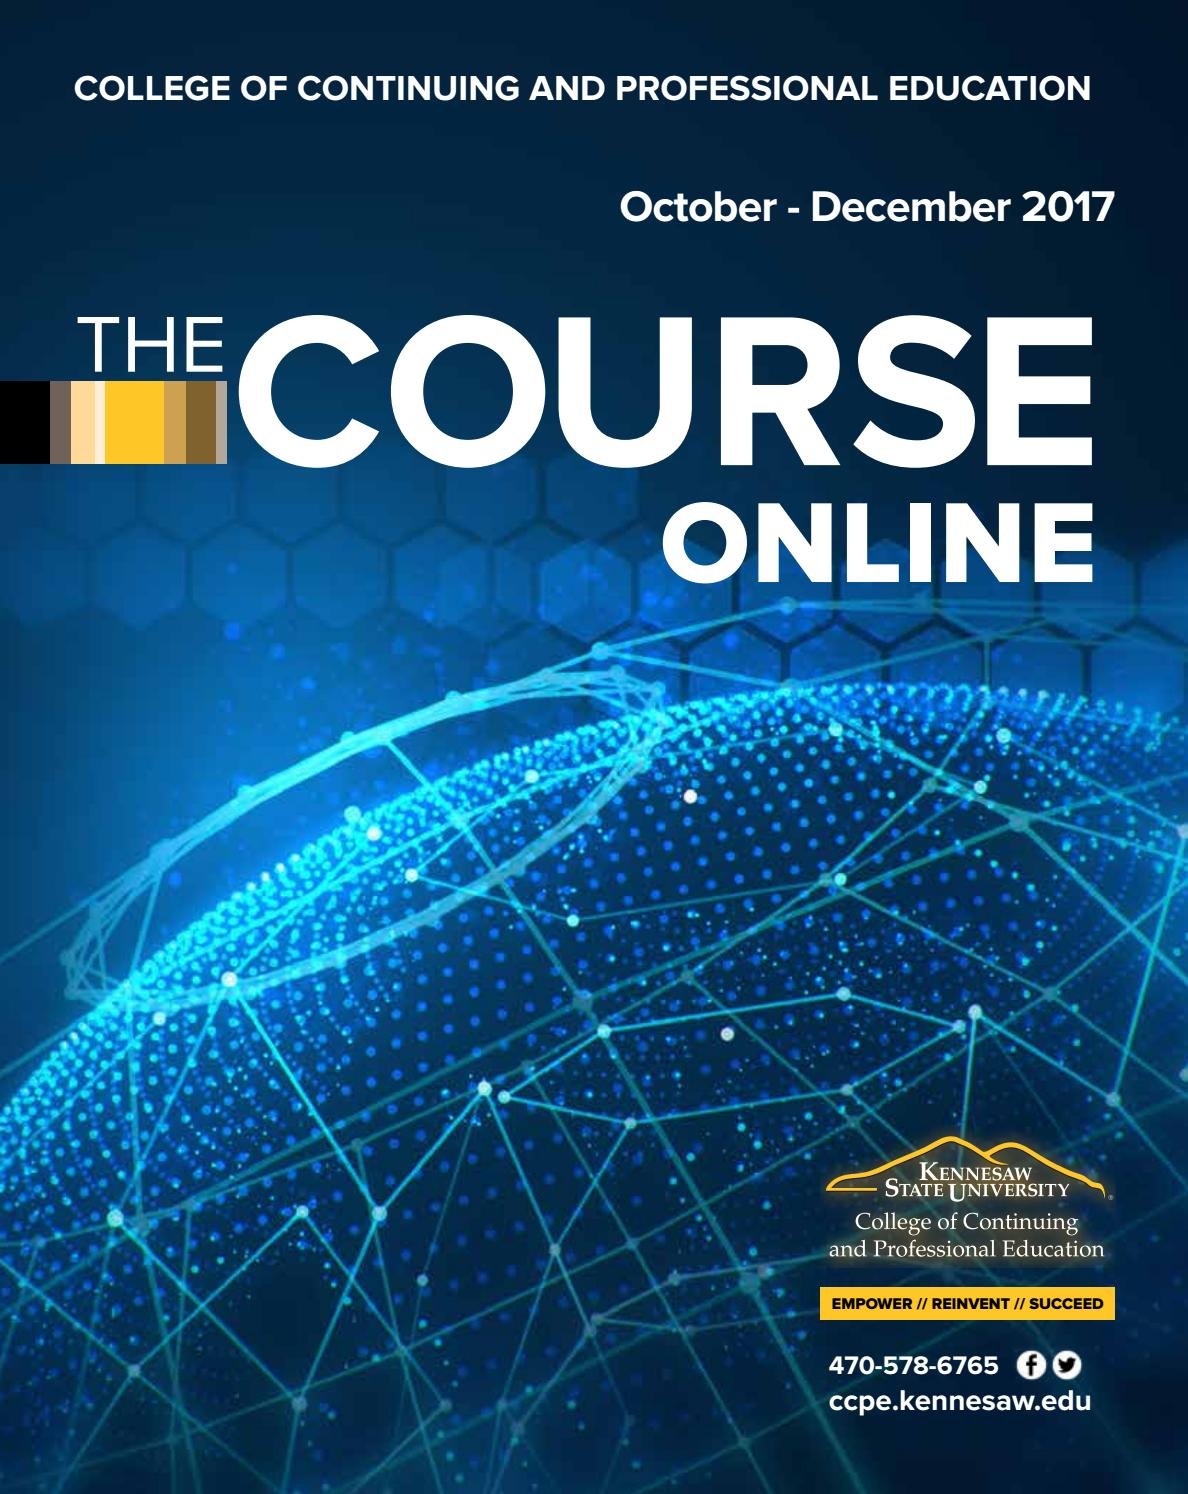 CCPE Online Course Catalog October - December 2017 by KSUCCPE - issuu